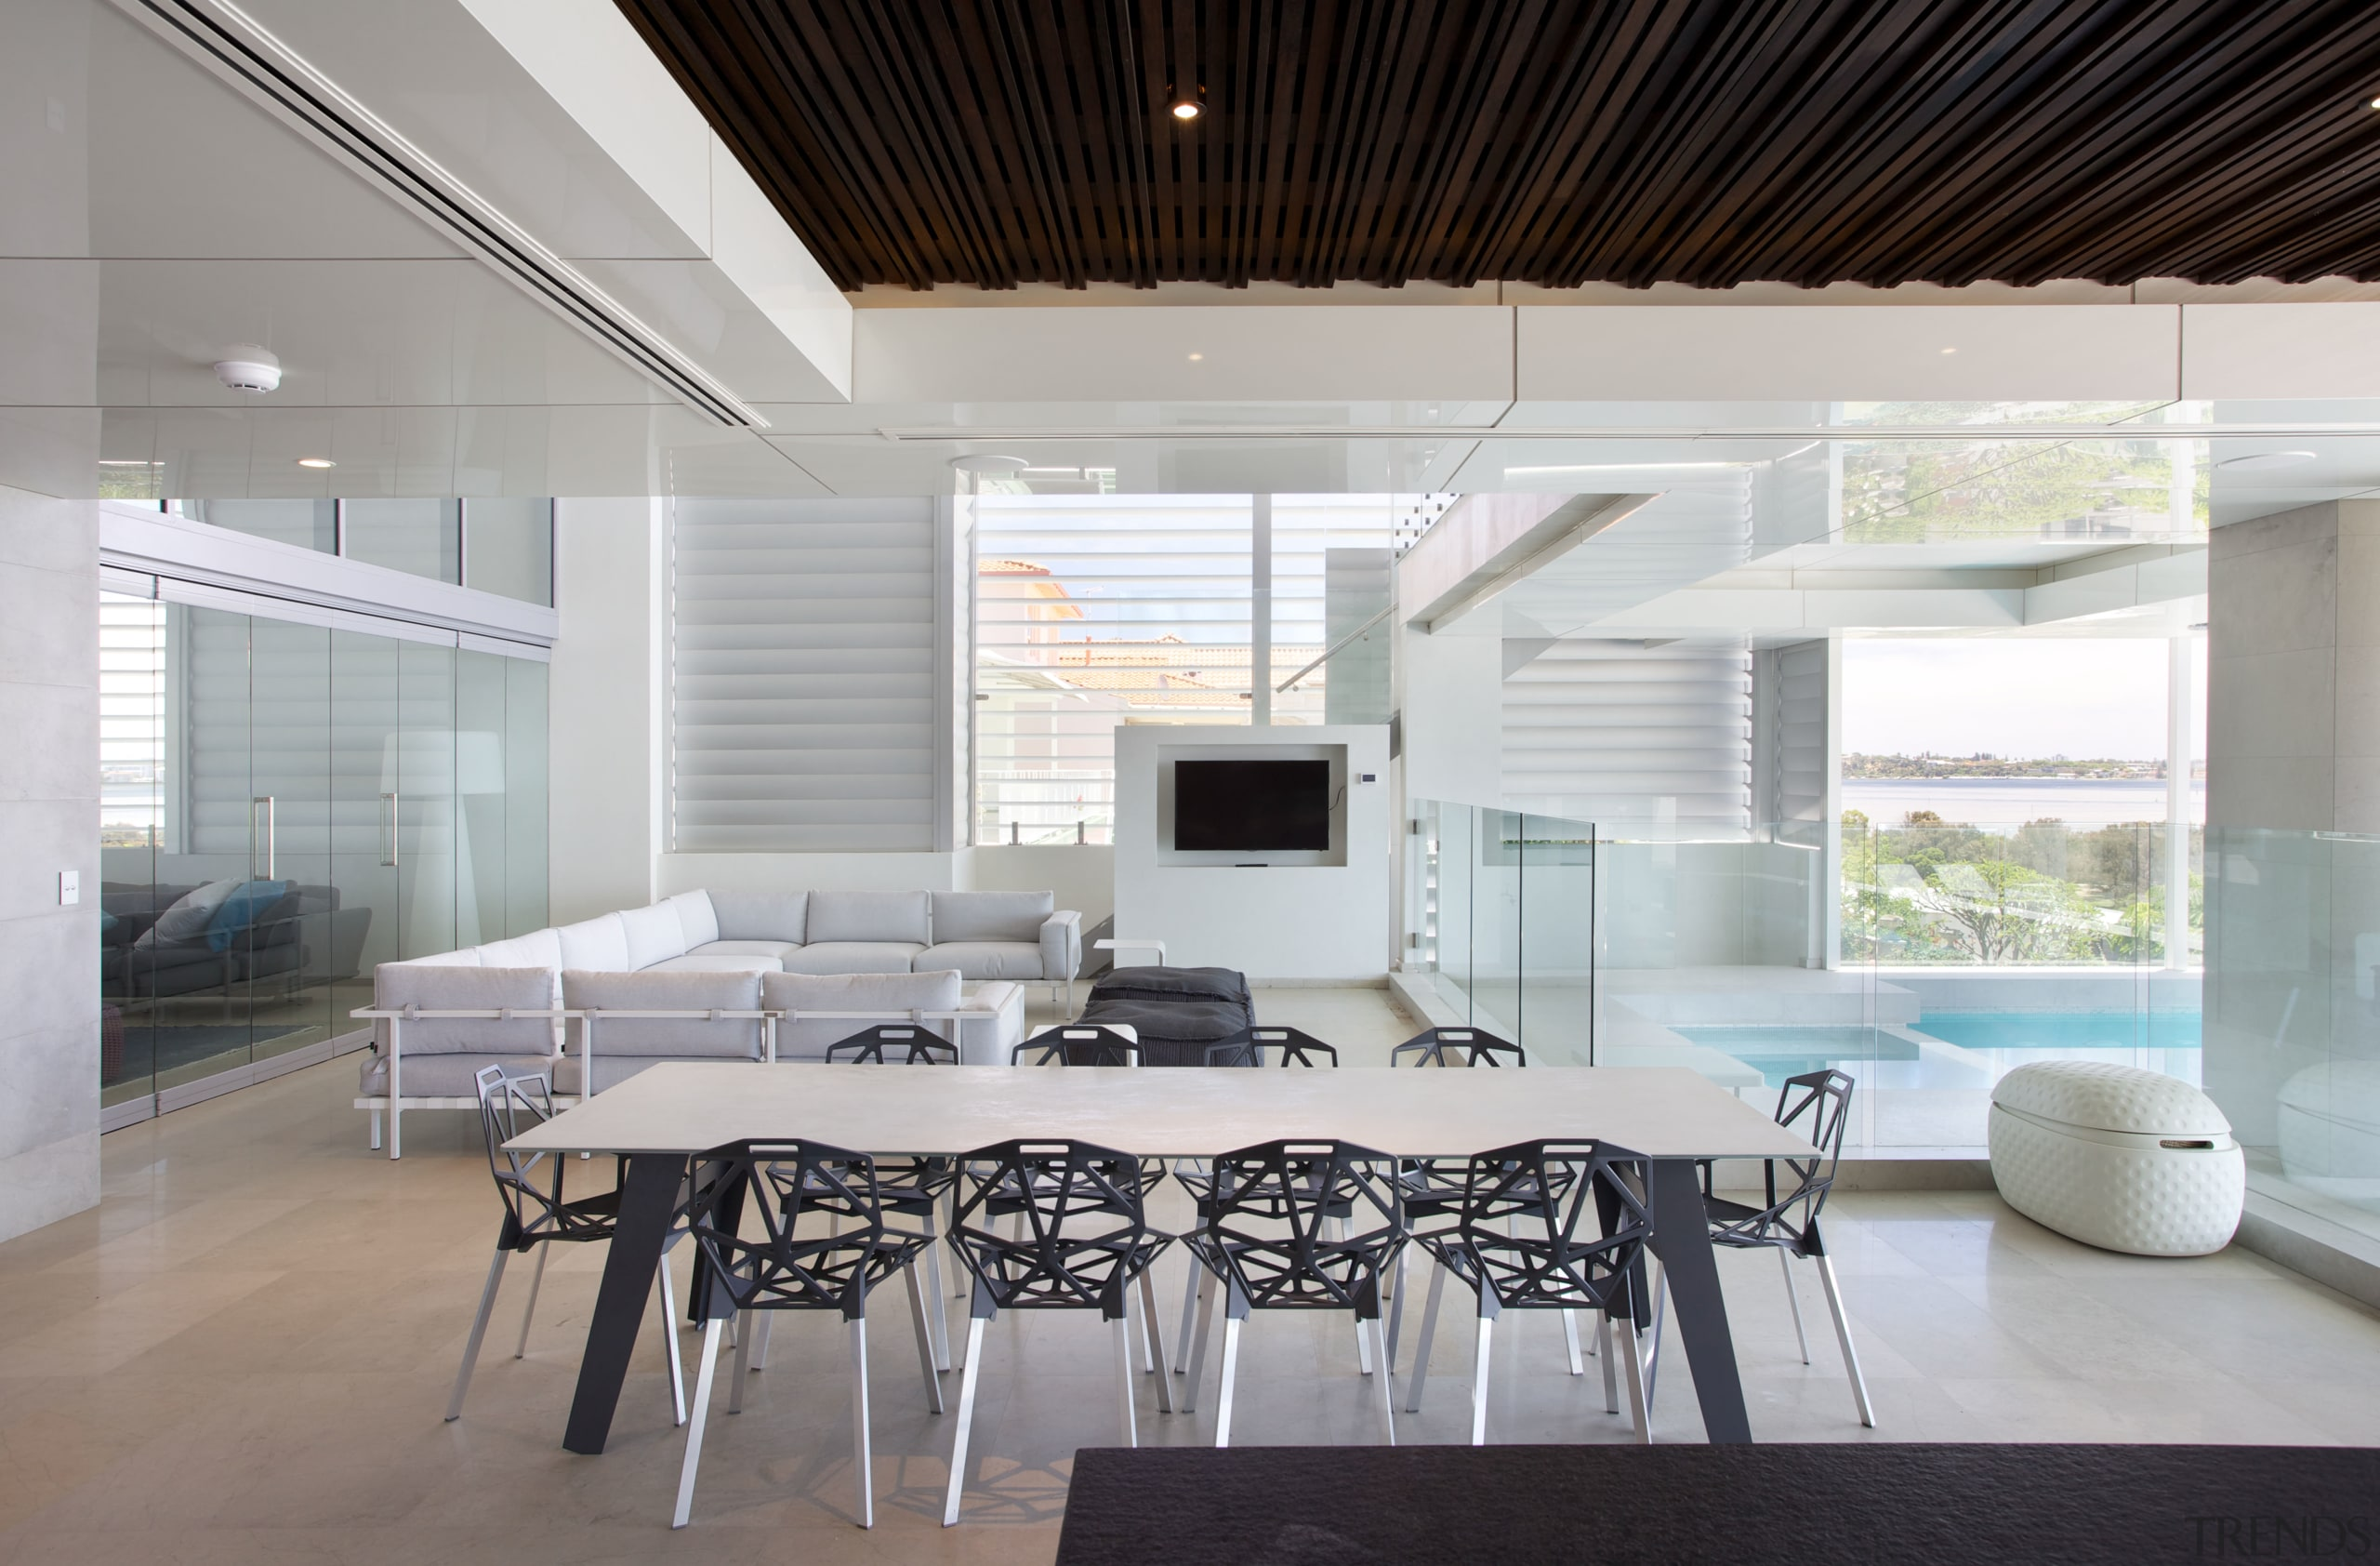 The mid-level of this three-storey house features a architecture, ceiling, daylighting, dining room, house, interior design, living room, real estate, table, gray